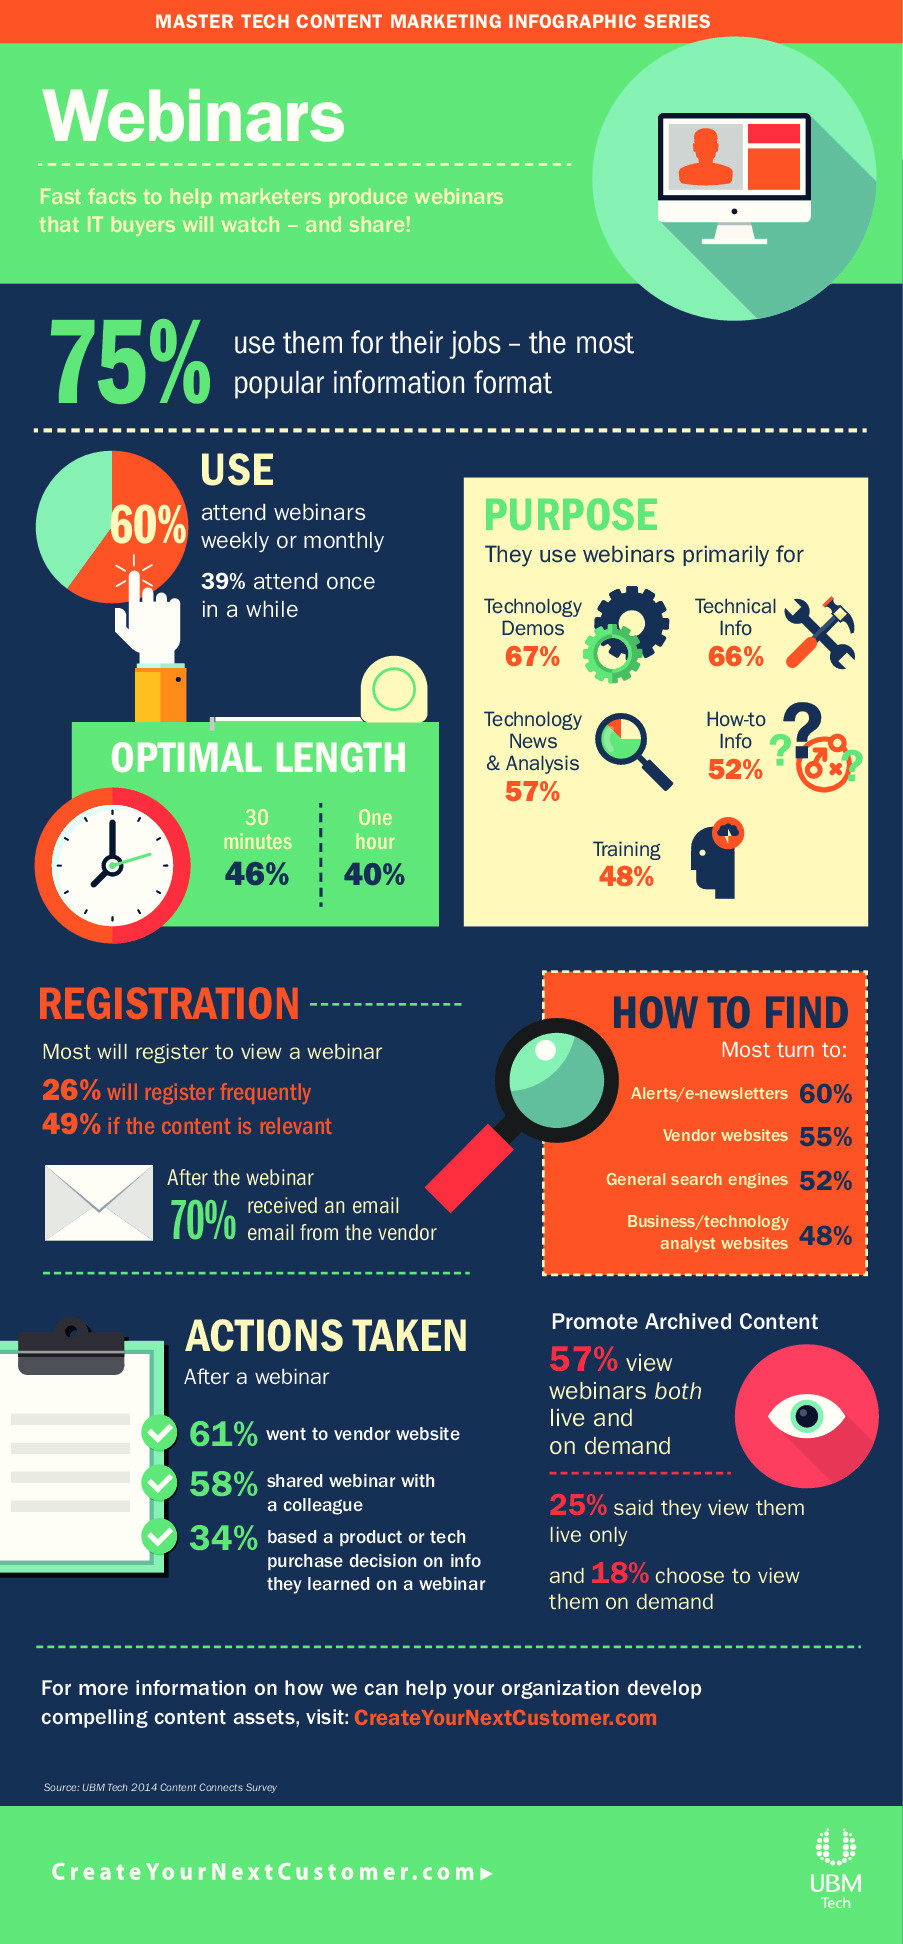 Tech Content Marketing Infographic Series: Webinars